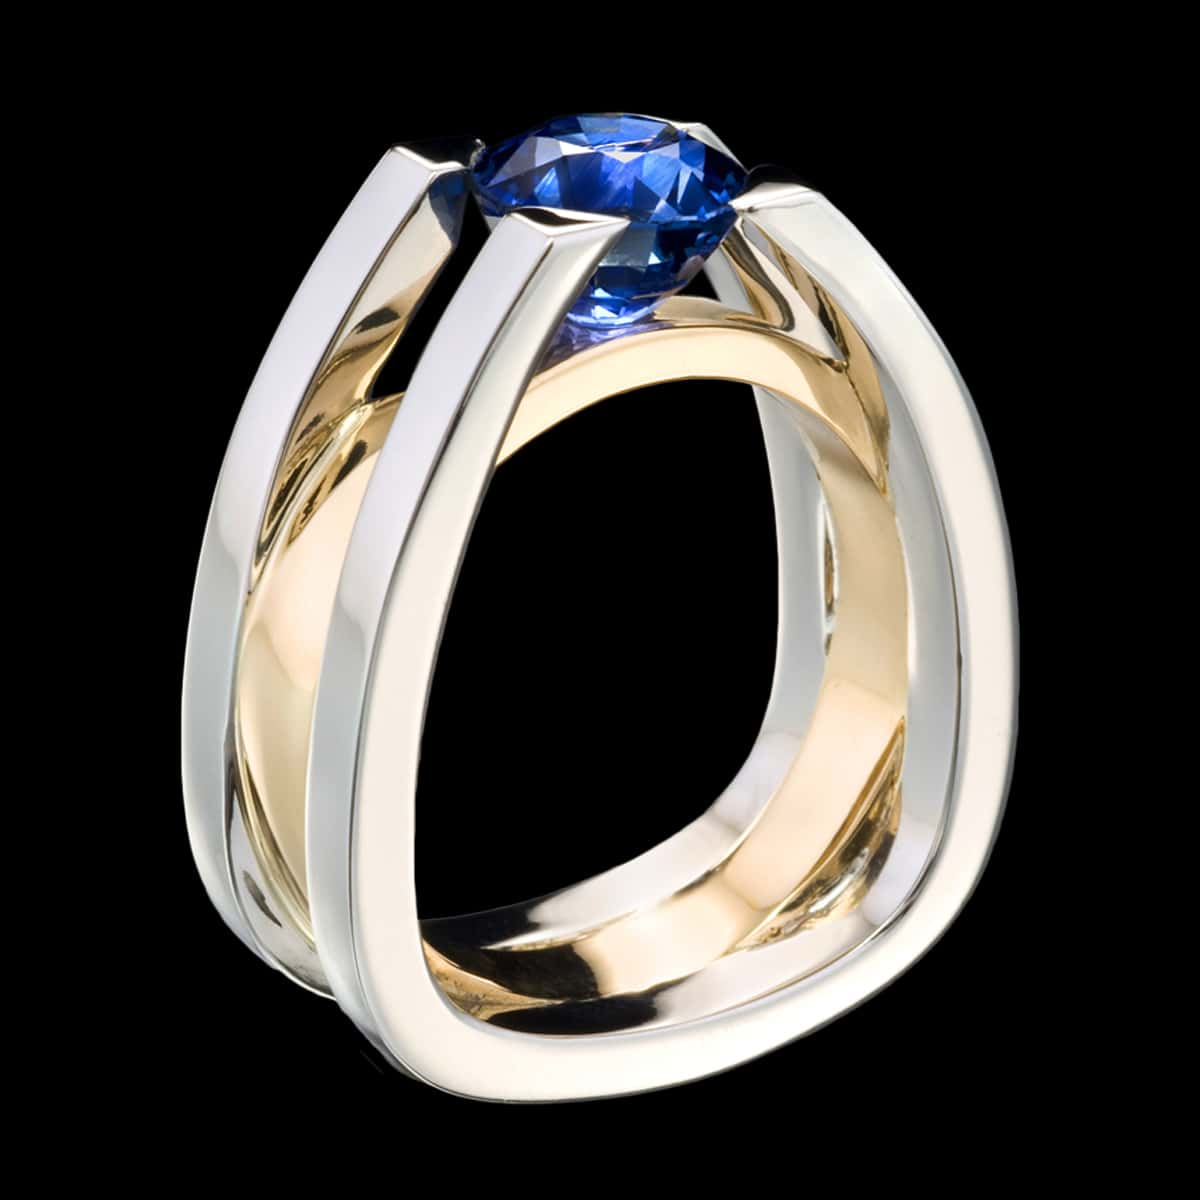 This is a photo of Mens Blue Sapphire Ring Forte Designer Jewelry by Adam Neeley